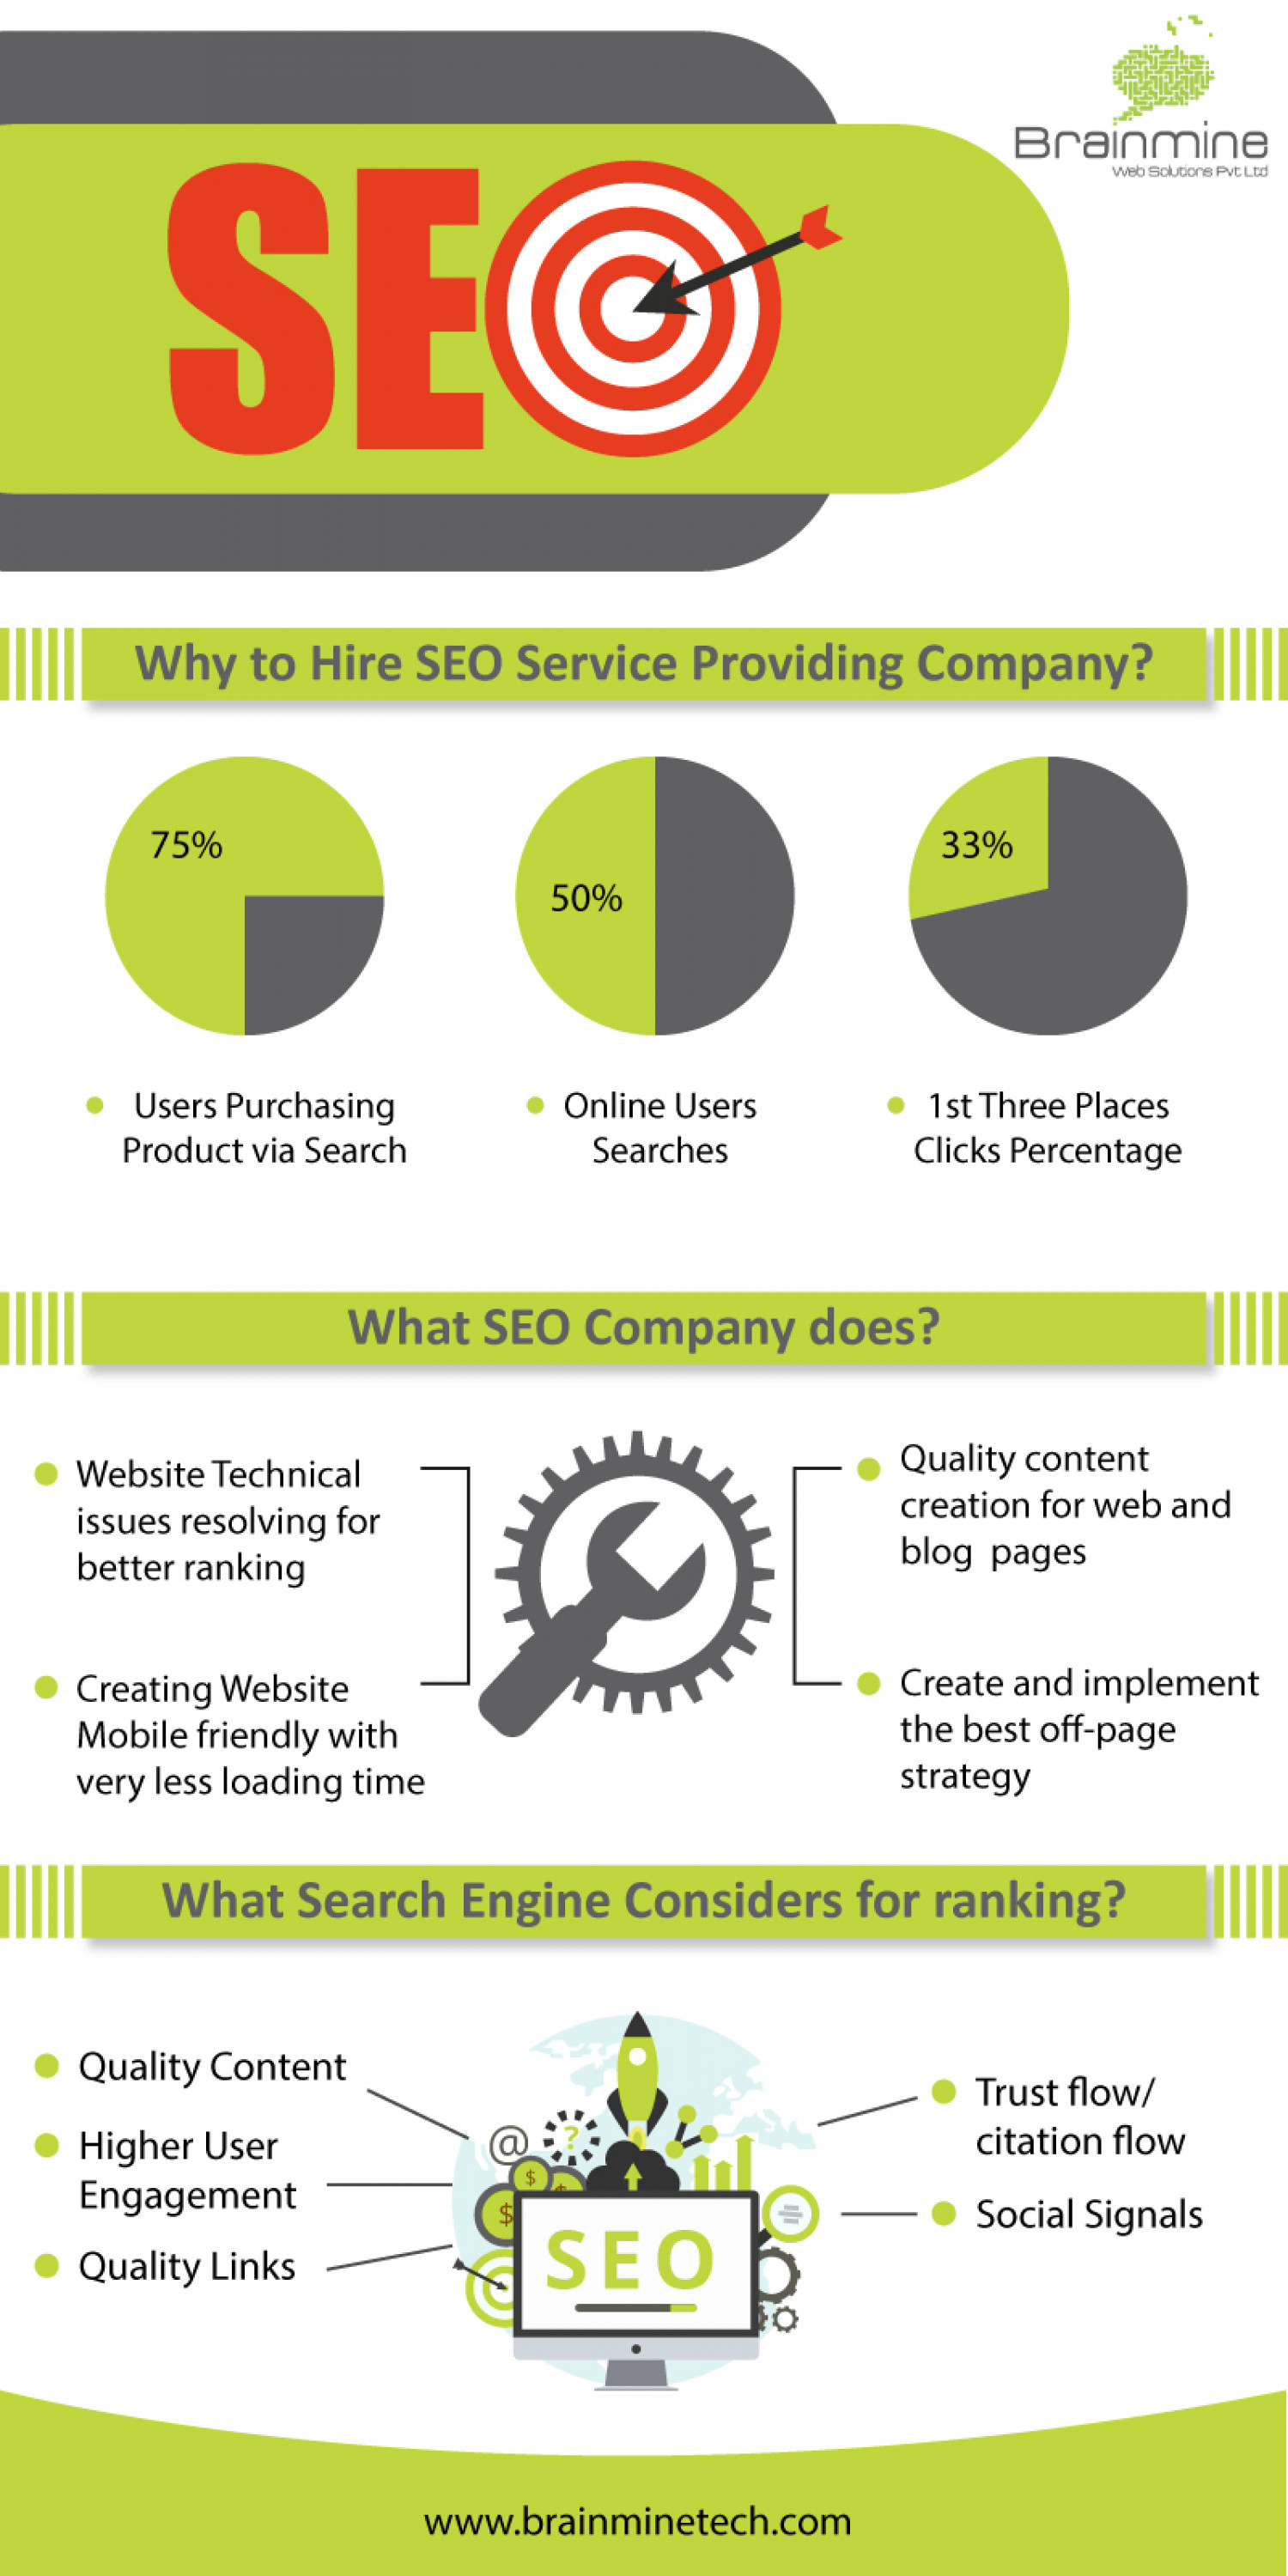 Why to hire SEO Service Providing Company